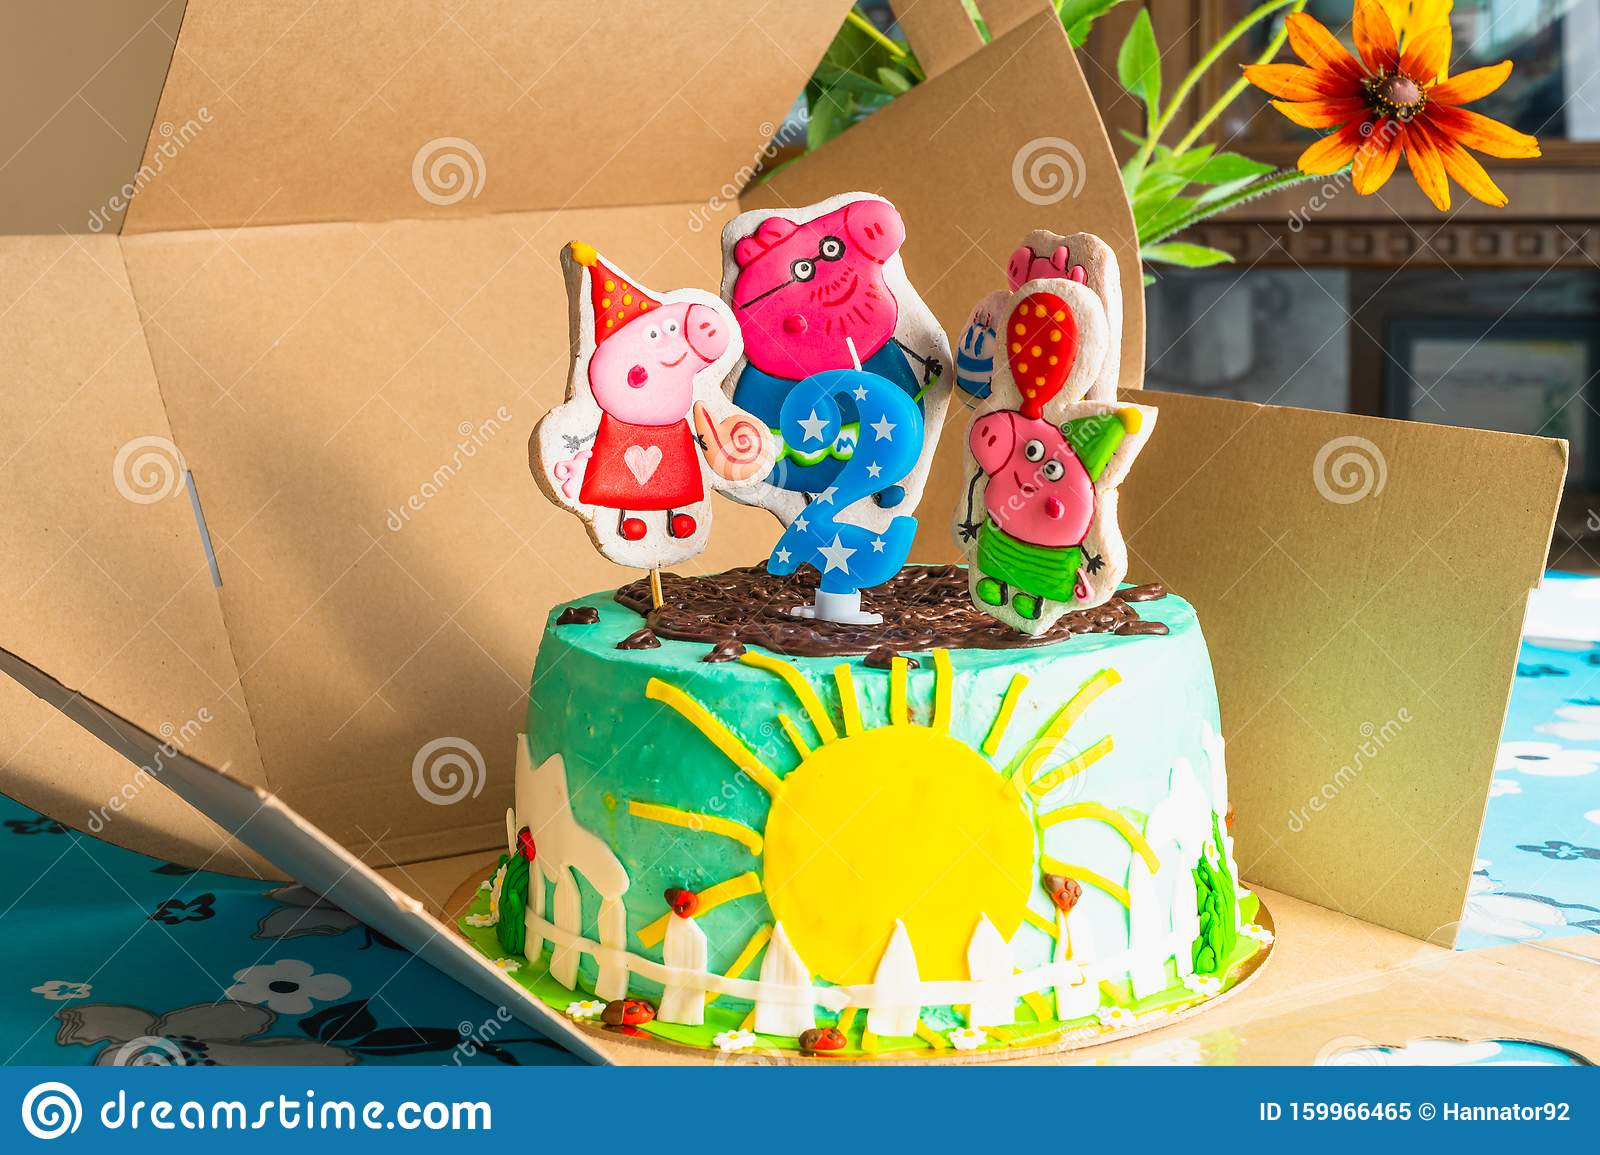 Incredible Peppa Pig Birthday Cake Happy 2 Years Birthday Cake Close Up Personalised Birthday Cards Paralily Jamesorg